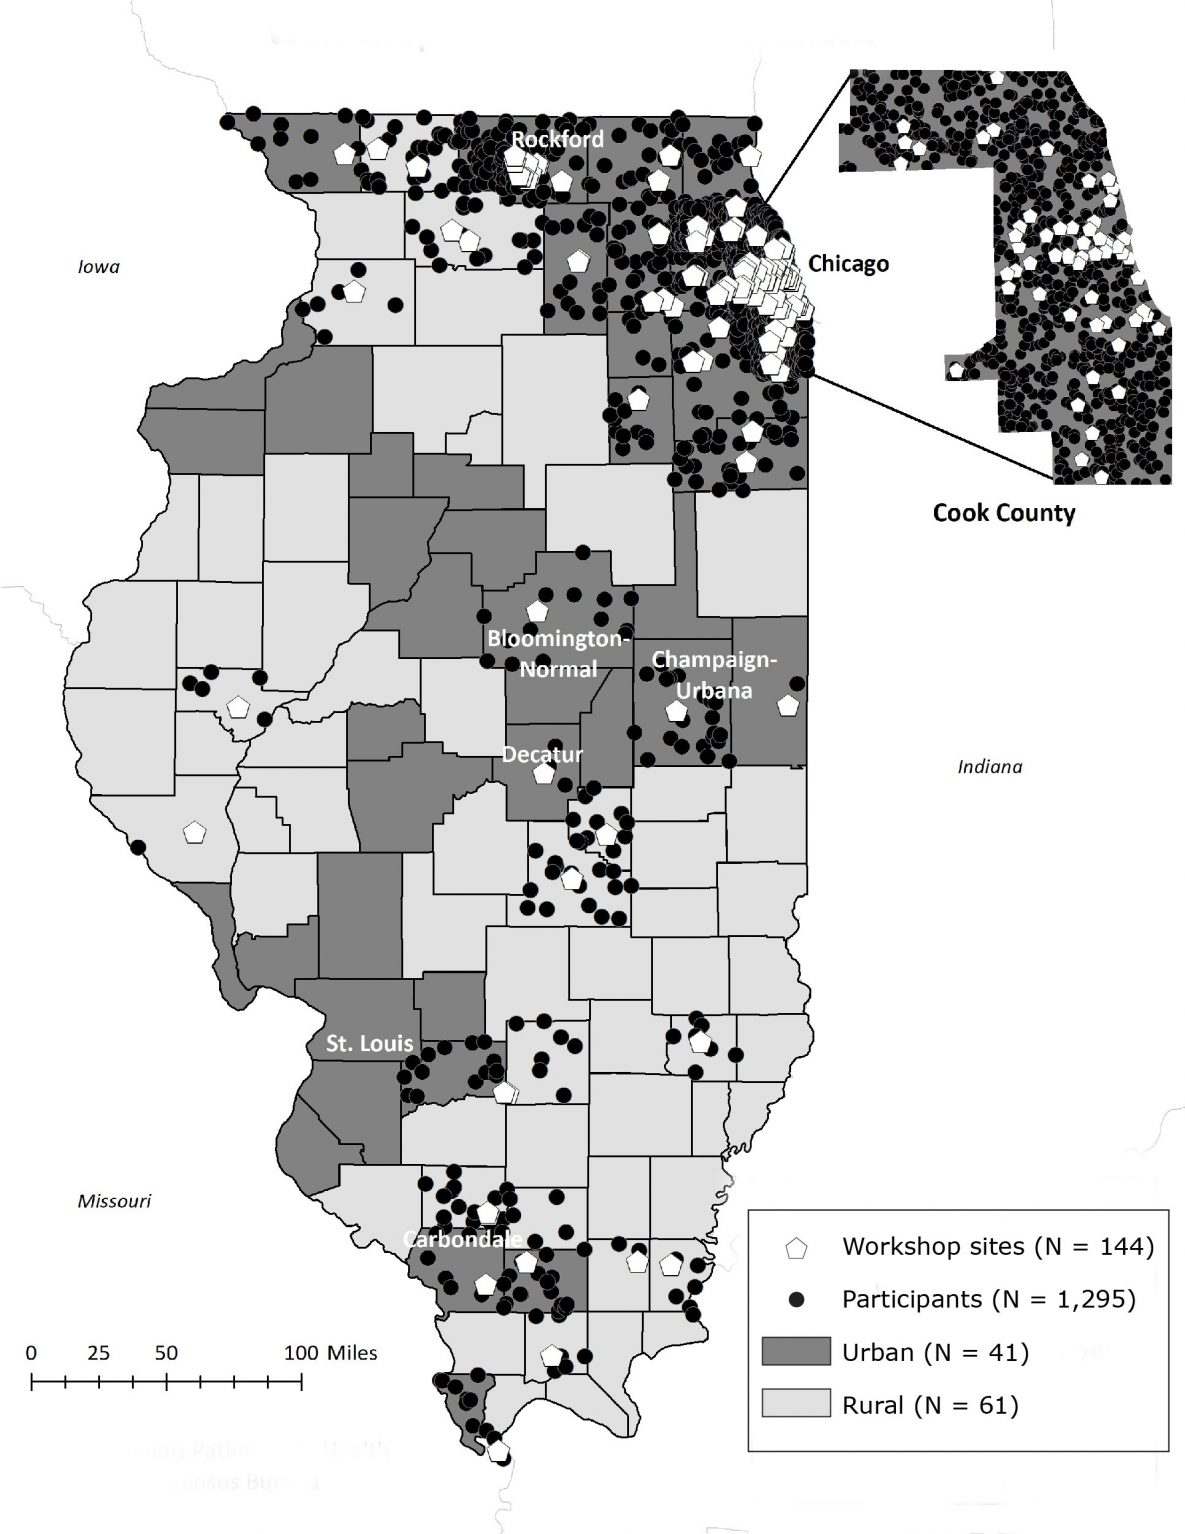 Location of workshop sites for the Chronic Disease Self-Management Program and the Diabetes Self-Management Program and distribution of participants' home addresses by rural and urban counties in Illinois during 2016–2017. We used the dot-density function to indicate the correct number of participants per county while protecting information on participants' exact residential locations. Data sources: Illinois Pathways to Health (19), US Census Bureau (20).